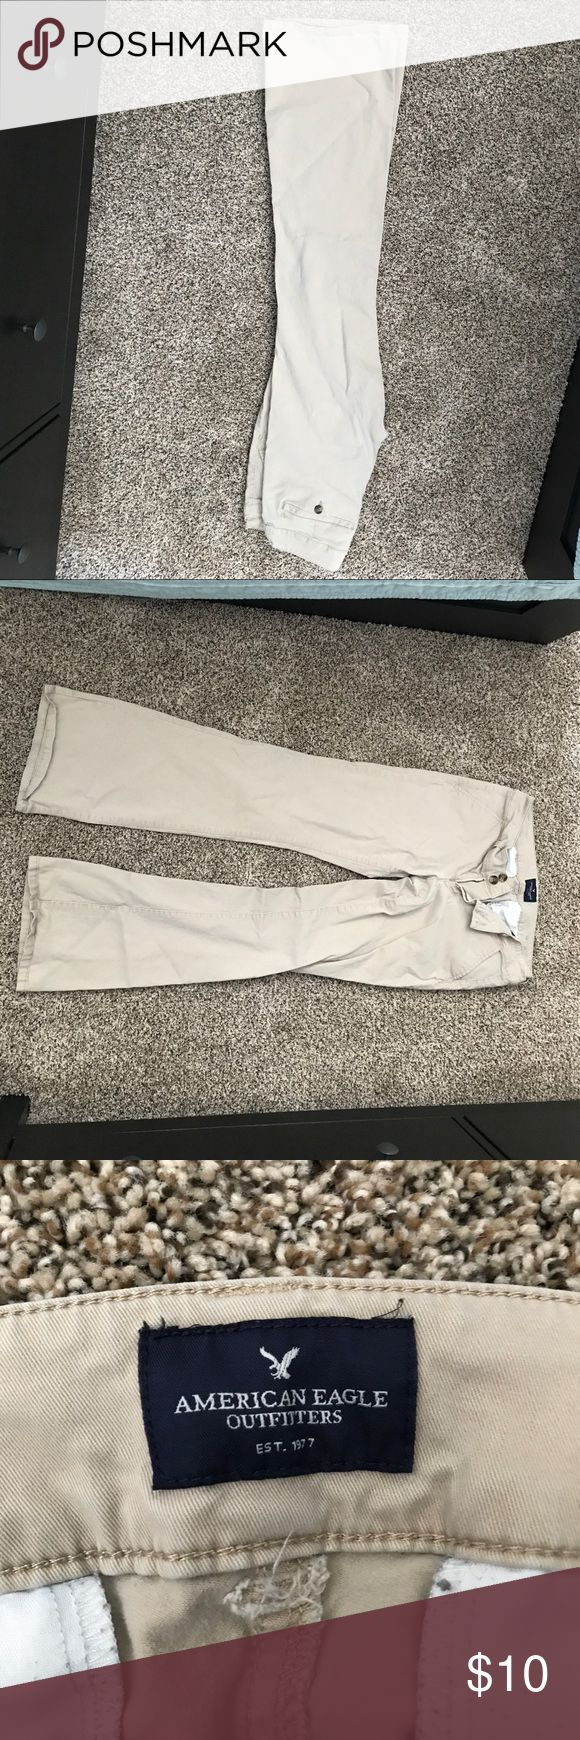 American Eagle Khaki Pants. Size 6 American Eagle Khaki pants size 6. Worn only a couple of times. No tears or stains. In really good shape. Breathable fabric. Perfect for Teachers or business casual attire. Abercrombie & Fitch Pants Trousers